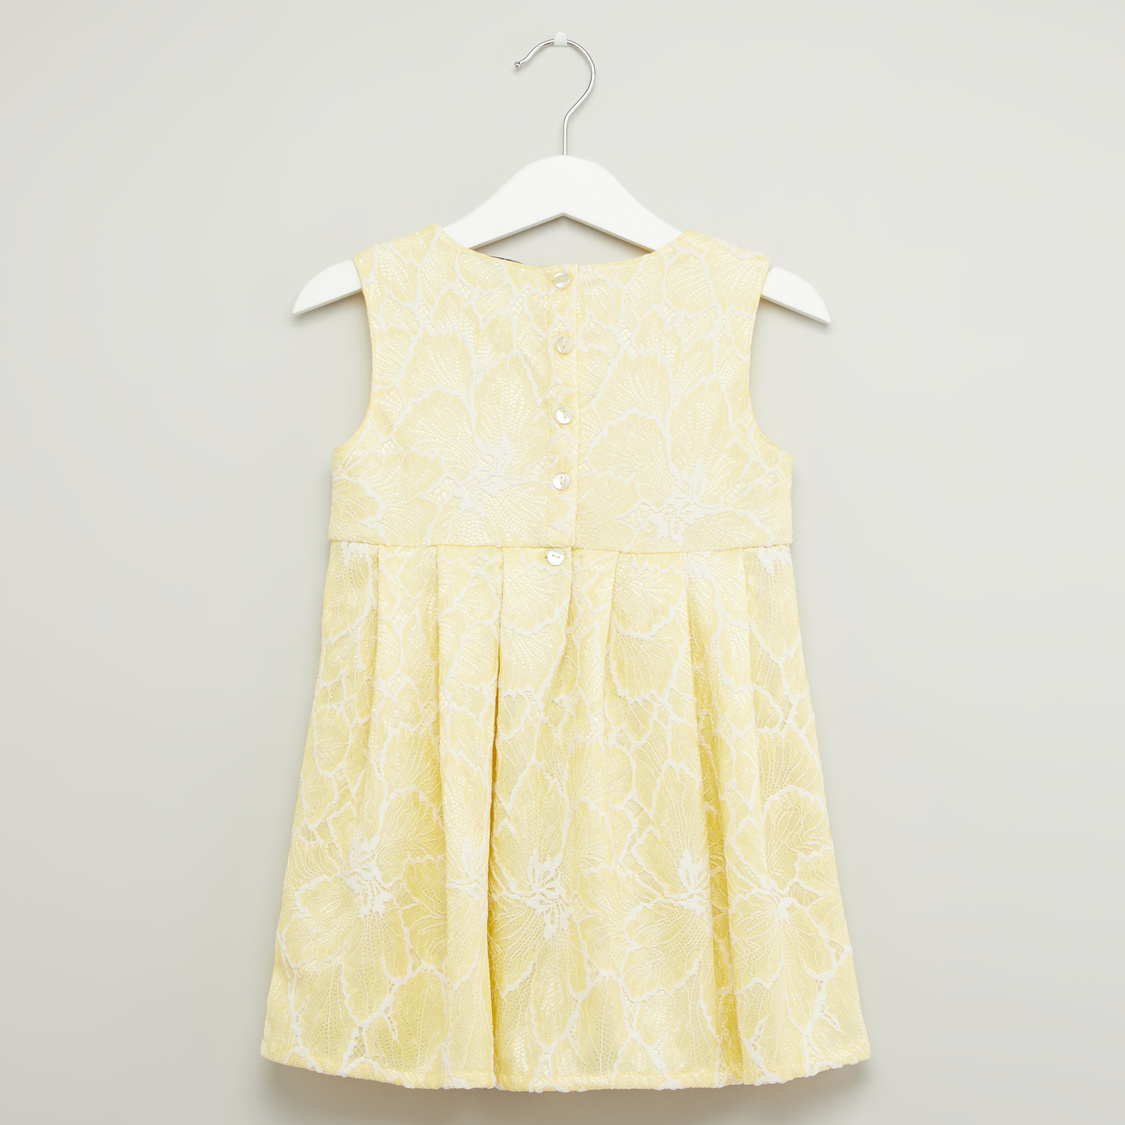 Lace Sleeveless Dress with Round Neck and Bow Applique